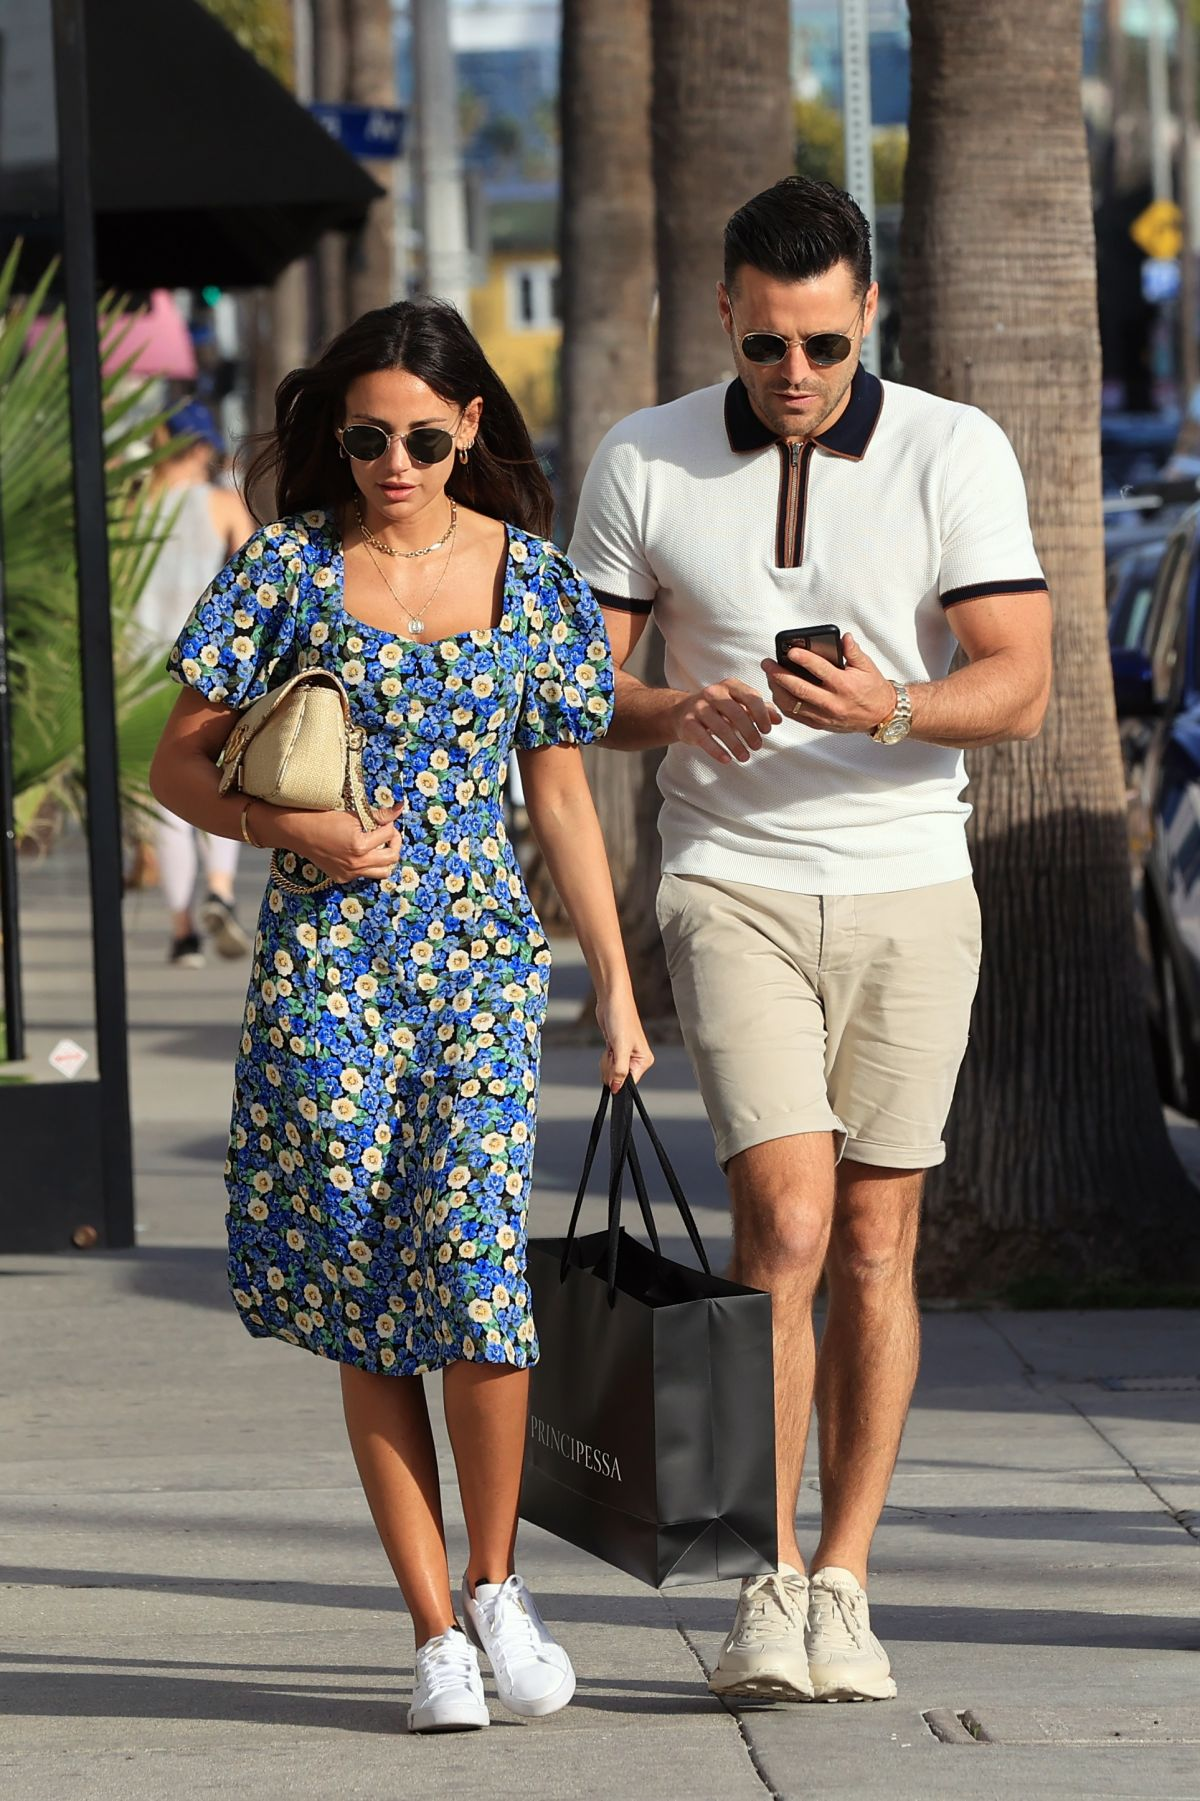 Michelle Keegan And Mark Wright Out And About In Los Angeles 02 27 2020 Hawtcelebs